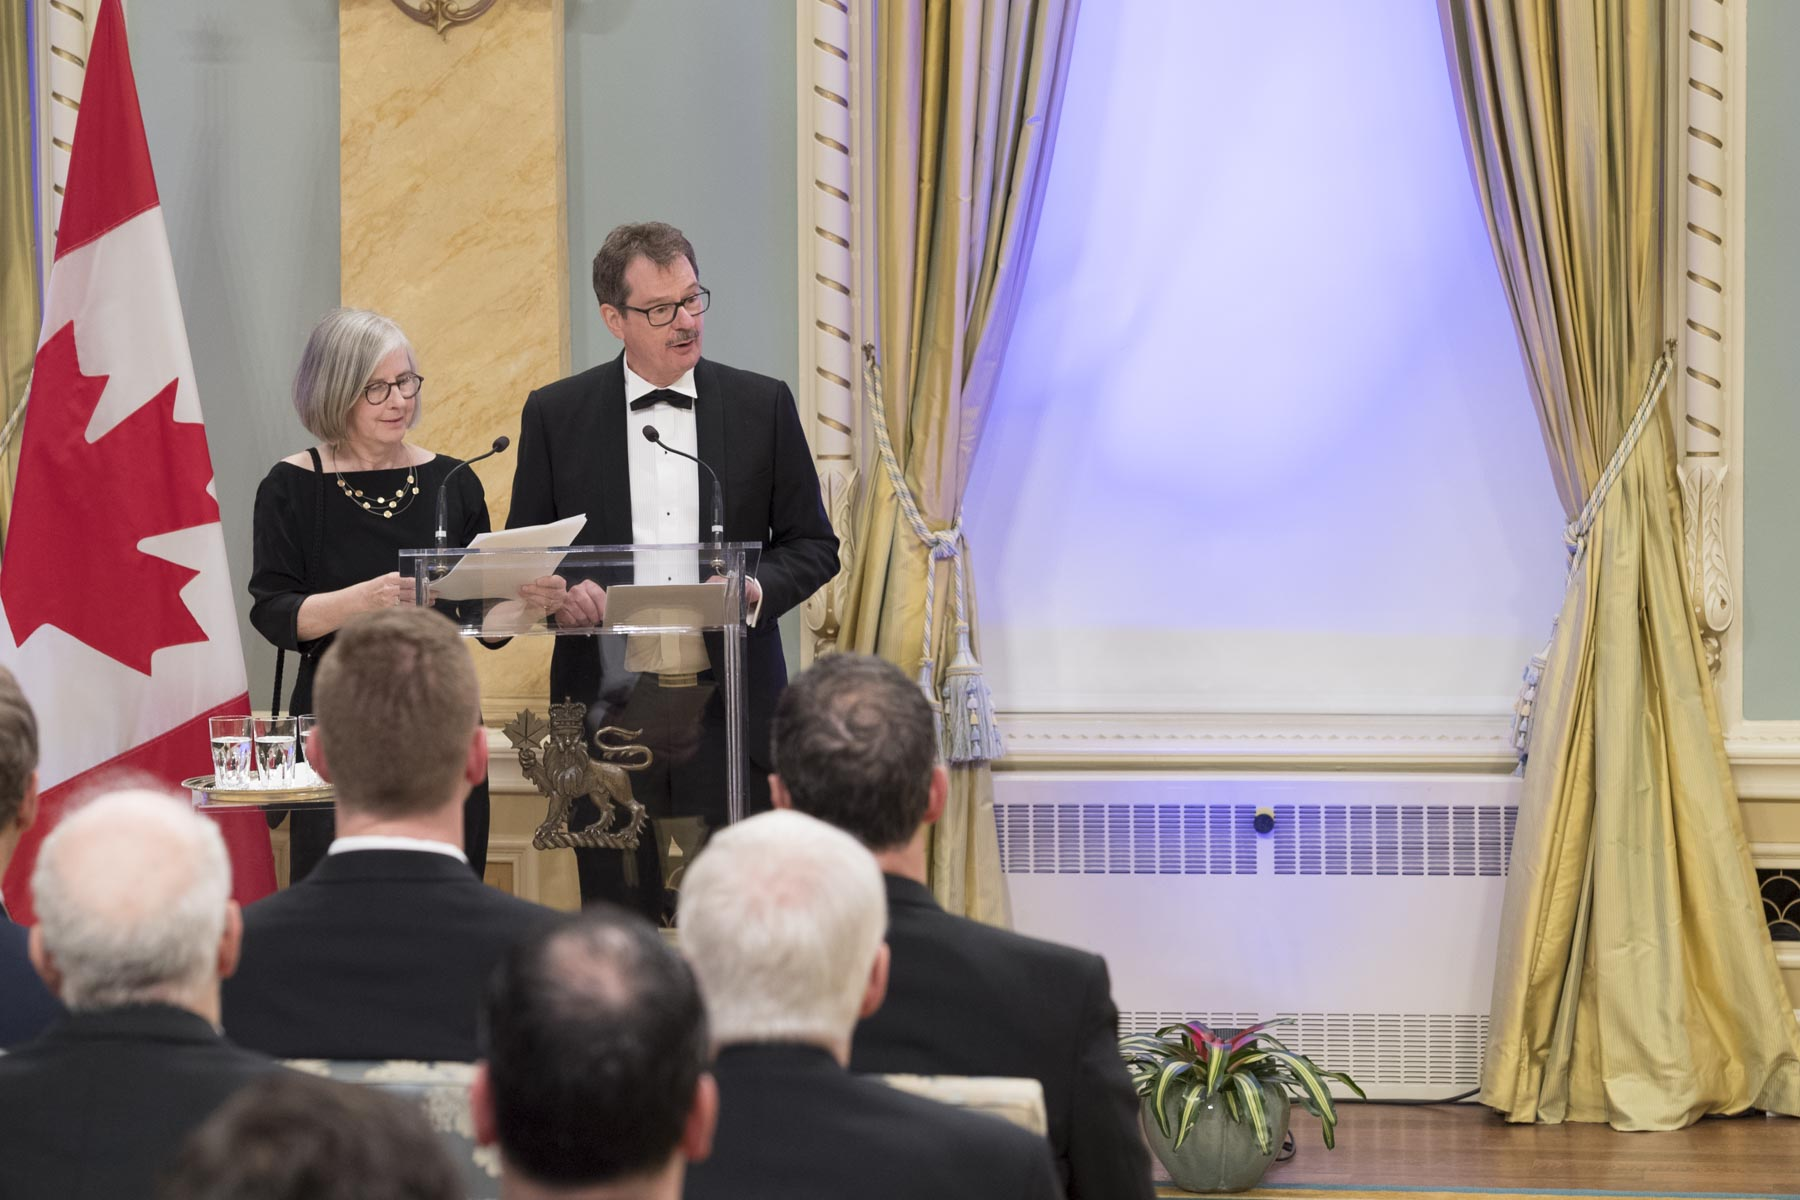 The evening was emceed by Ms. Kim Kierans, Vice-President of the Michener Foundation, and Mr. Pierre-Paul Noreau, Editor-in-Chief of Le Droit.